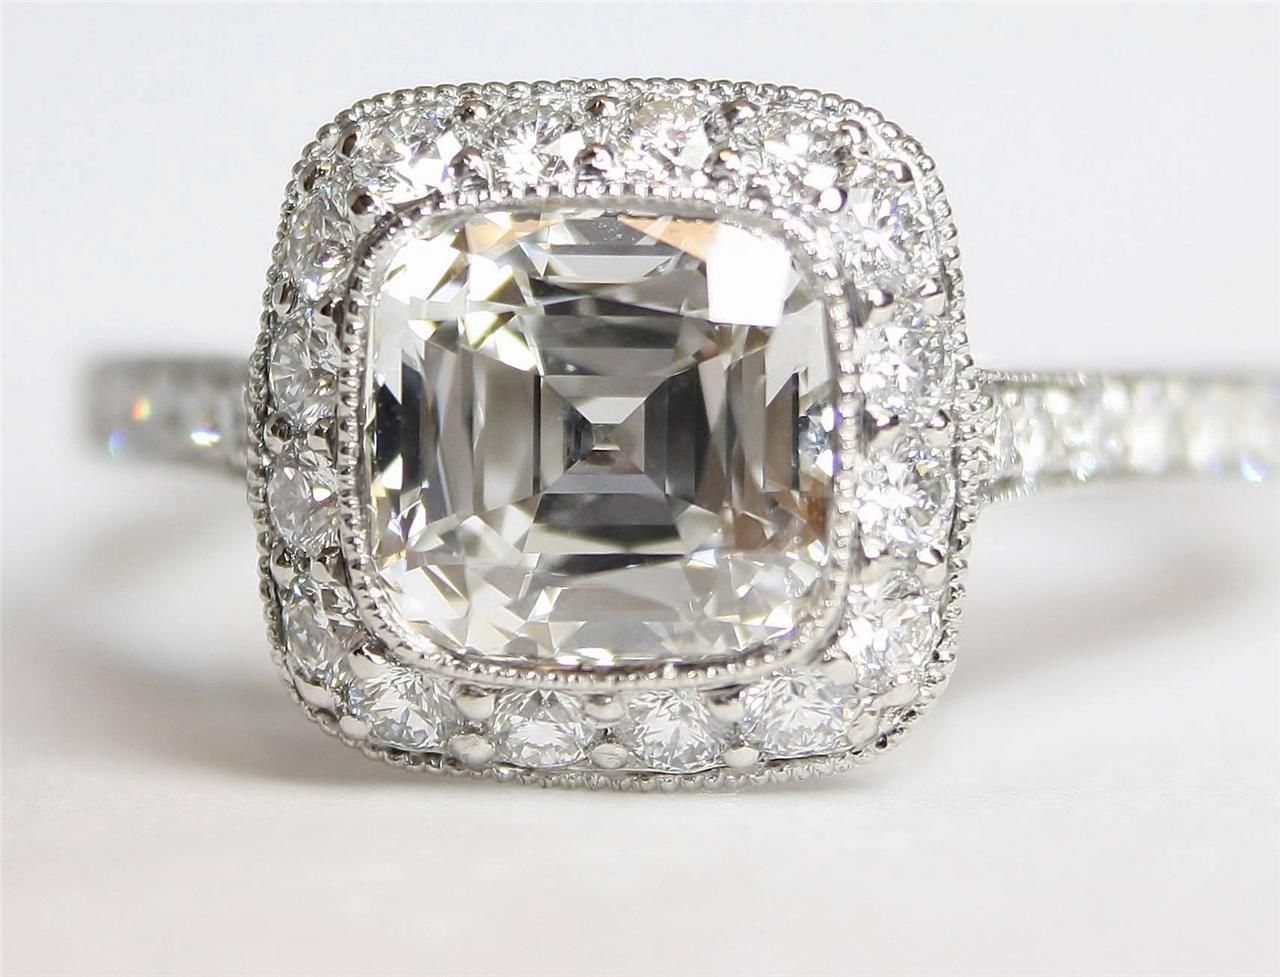 sell a tiffany engagement ring - Used Wedding Rings For Sale